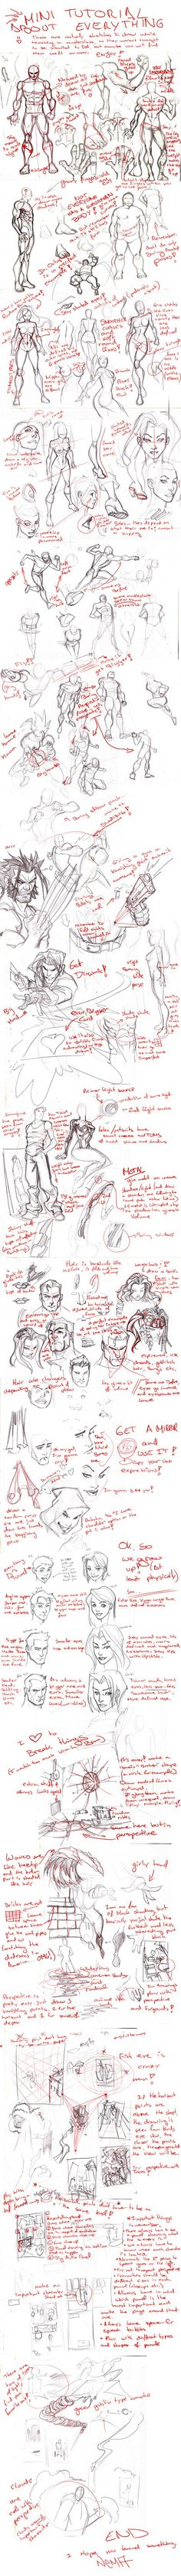 Everything Mini Tutorial by *CarlosGomezArtist on deviantART